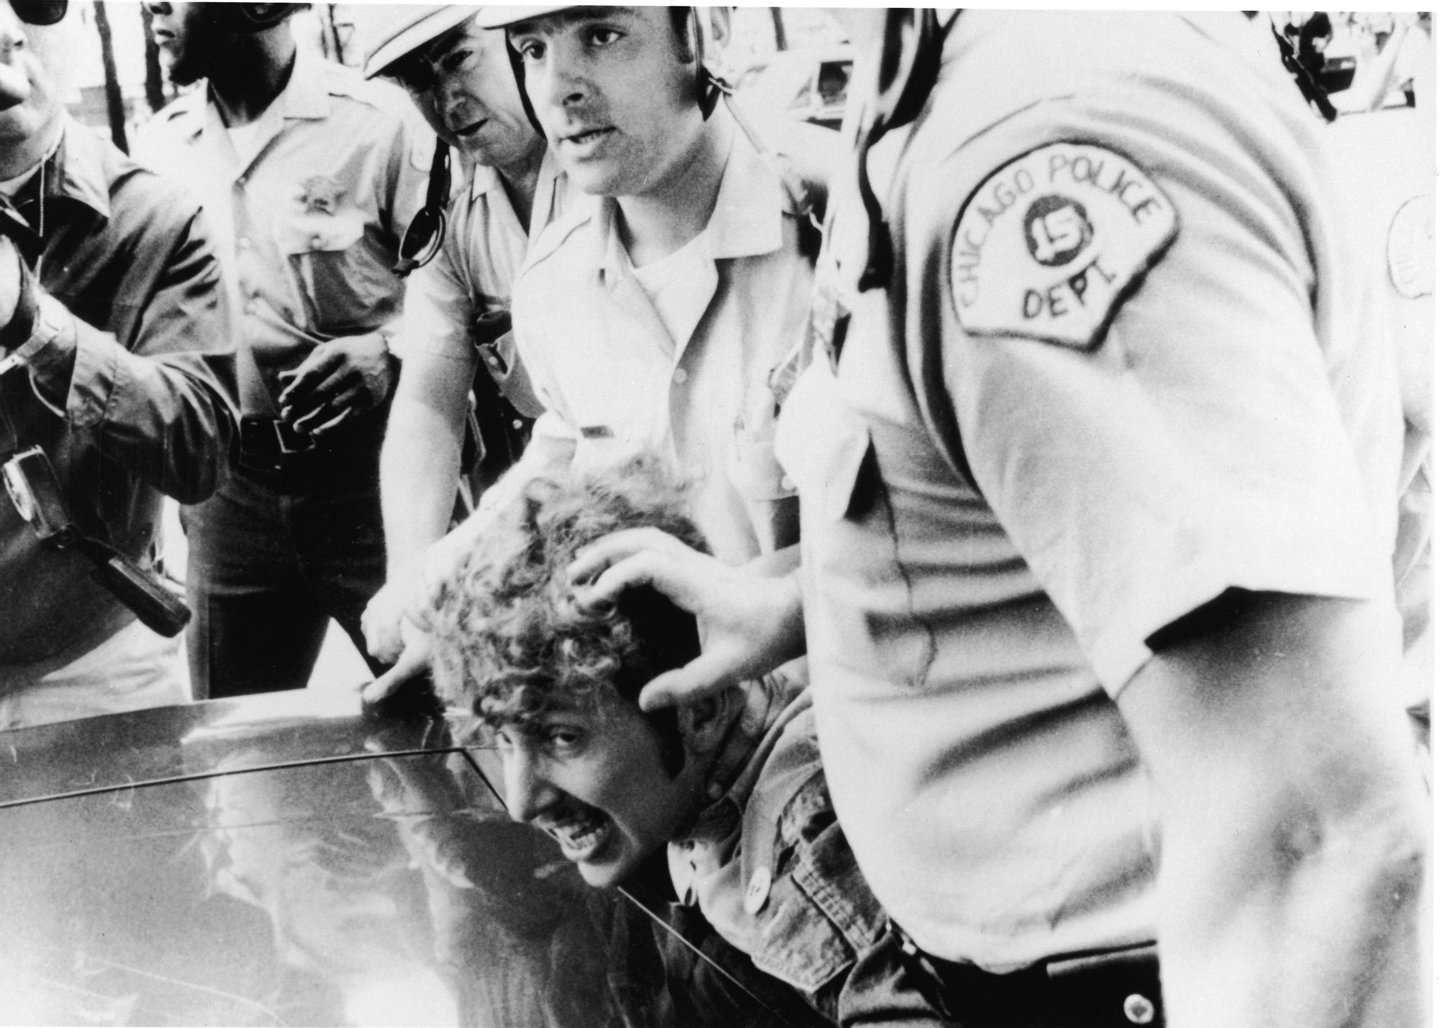 Officers from the Chicago Police Department push a protestor's head against the hood of a car as they restrain him after he climbed onto a wooden barricade near the Democratic headquarters of the 1968 Democratic National Convention and waved a Vietcong flag during anti-Vietnam War demonstrations, Chicago, Illinois, August 26, 1968. (Photo by APA/Getty Images)